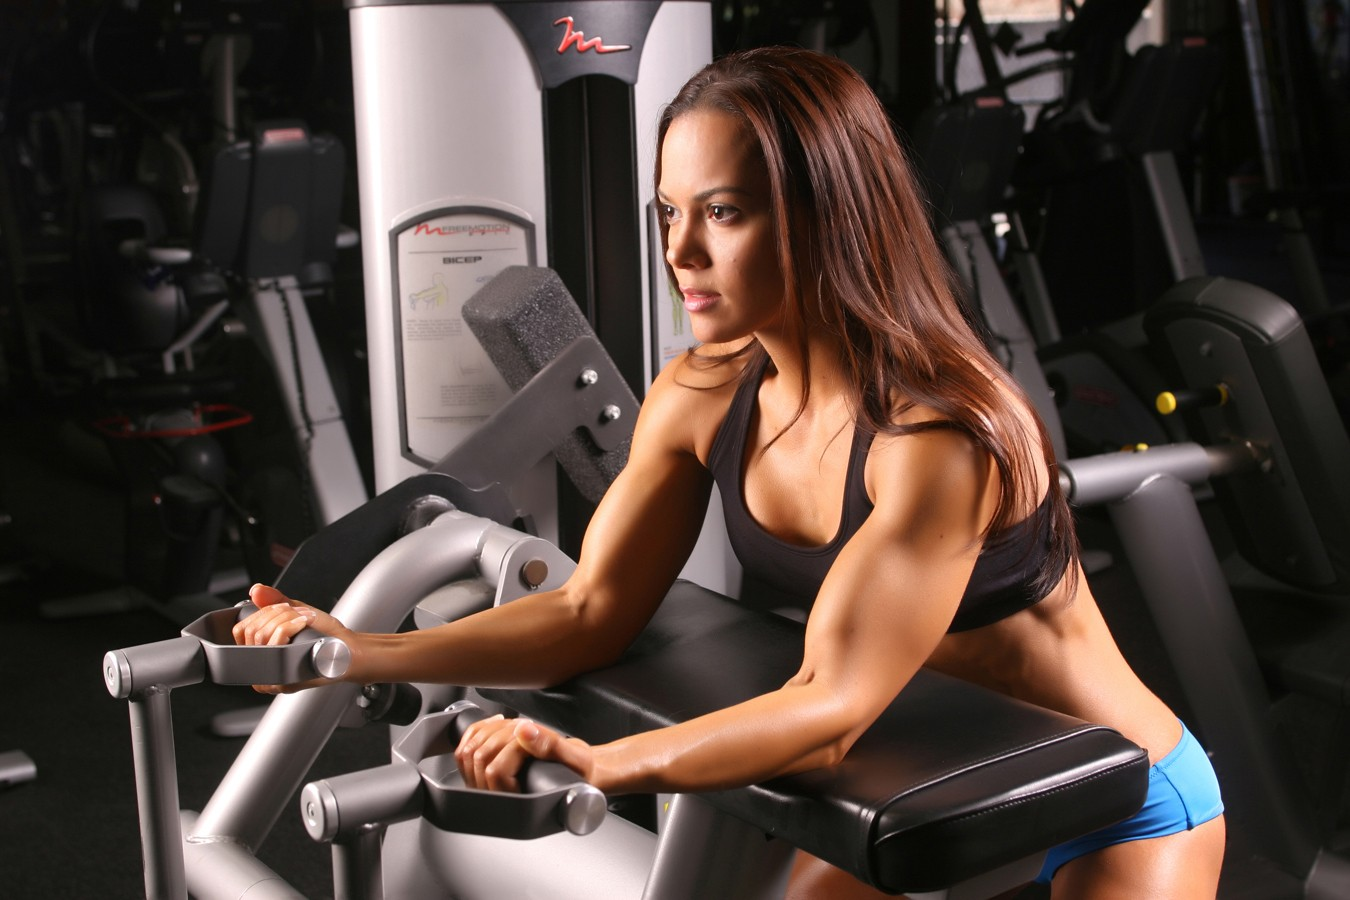 Sports Vanessa Tib font b fitness b font font b models b font athletic gyms barbell